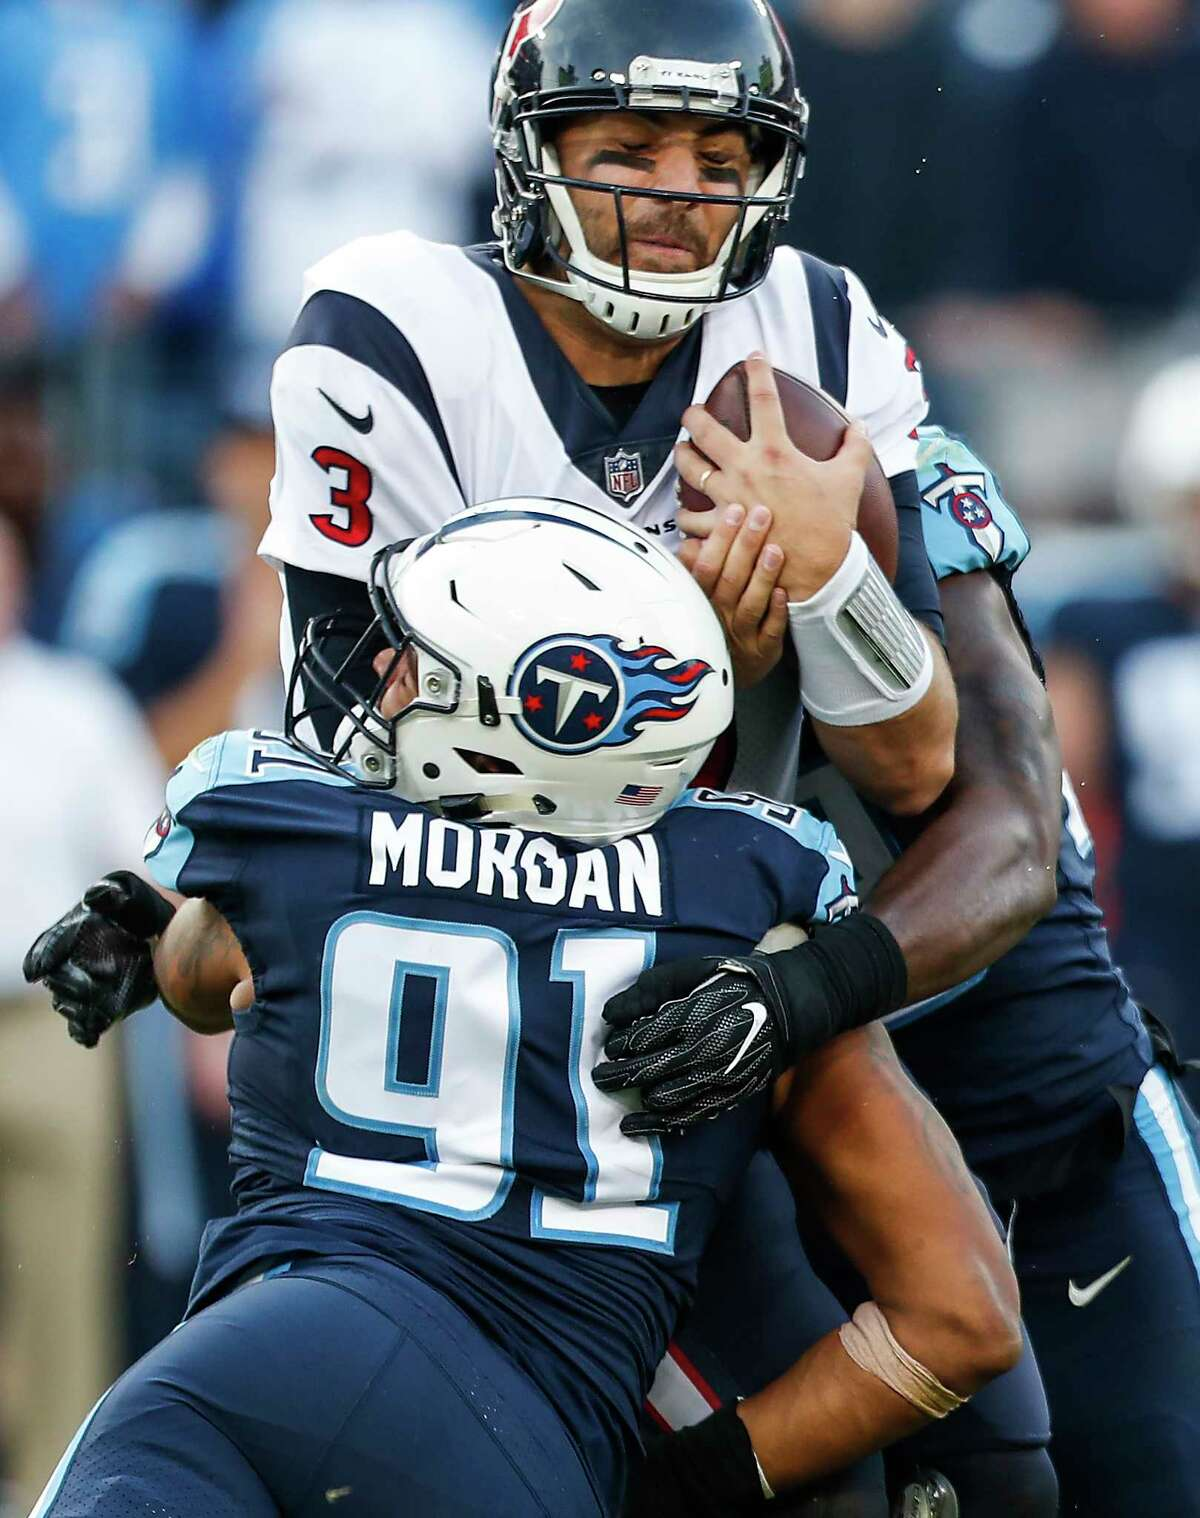 Despite throwing for a career-best 365 yards, Texans quarterback Tom Savage was sacked four times by the Titans, including one by outside linebacker Derrick Morgan in the fourth quarter.